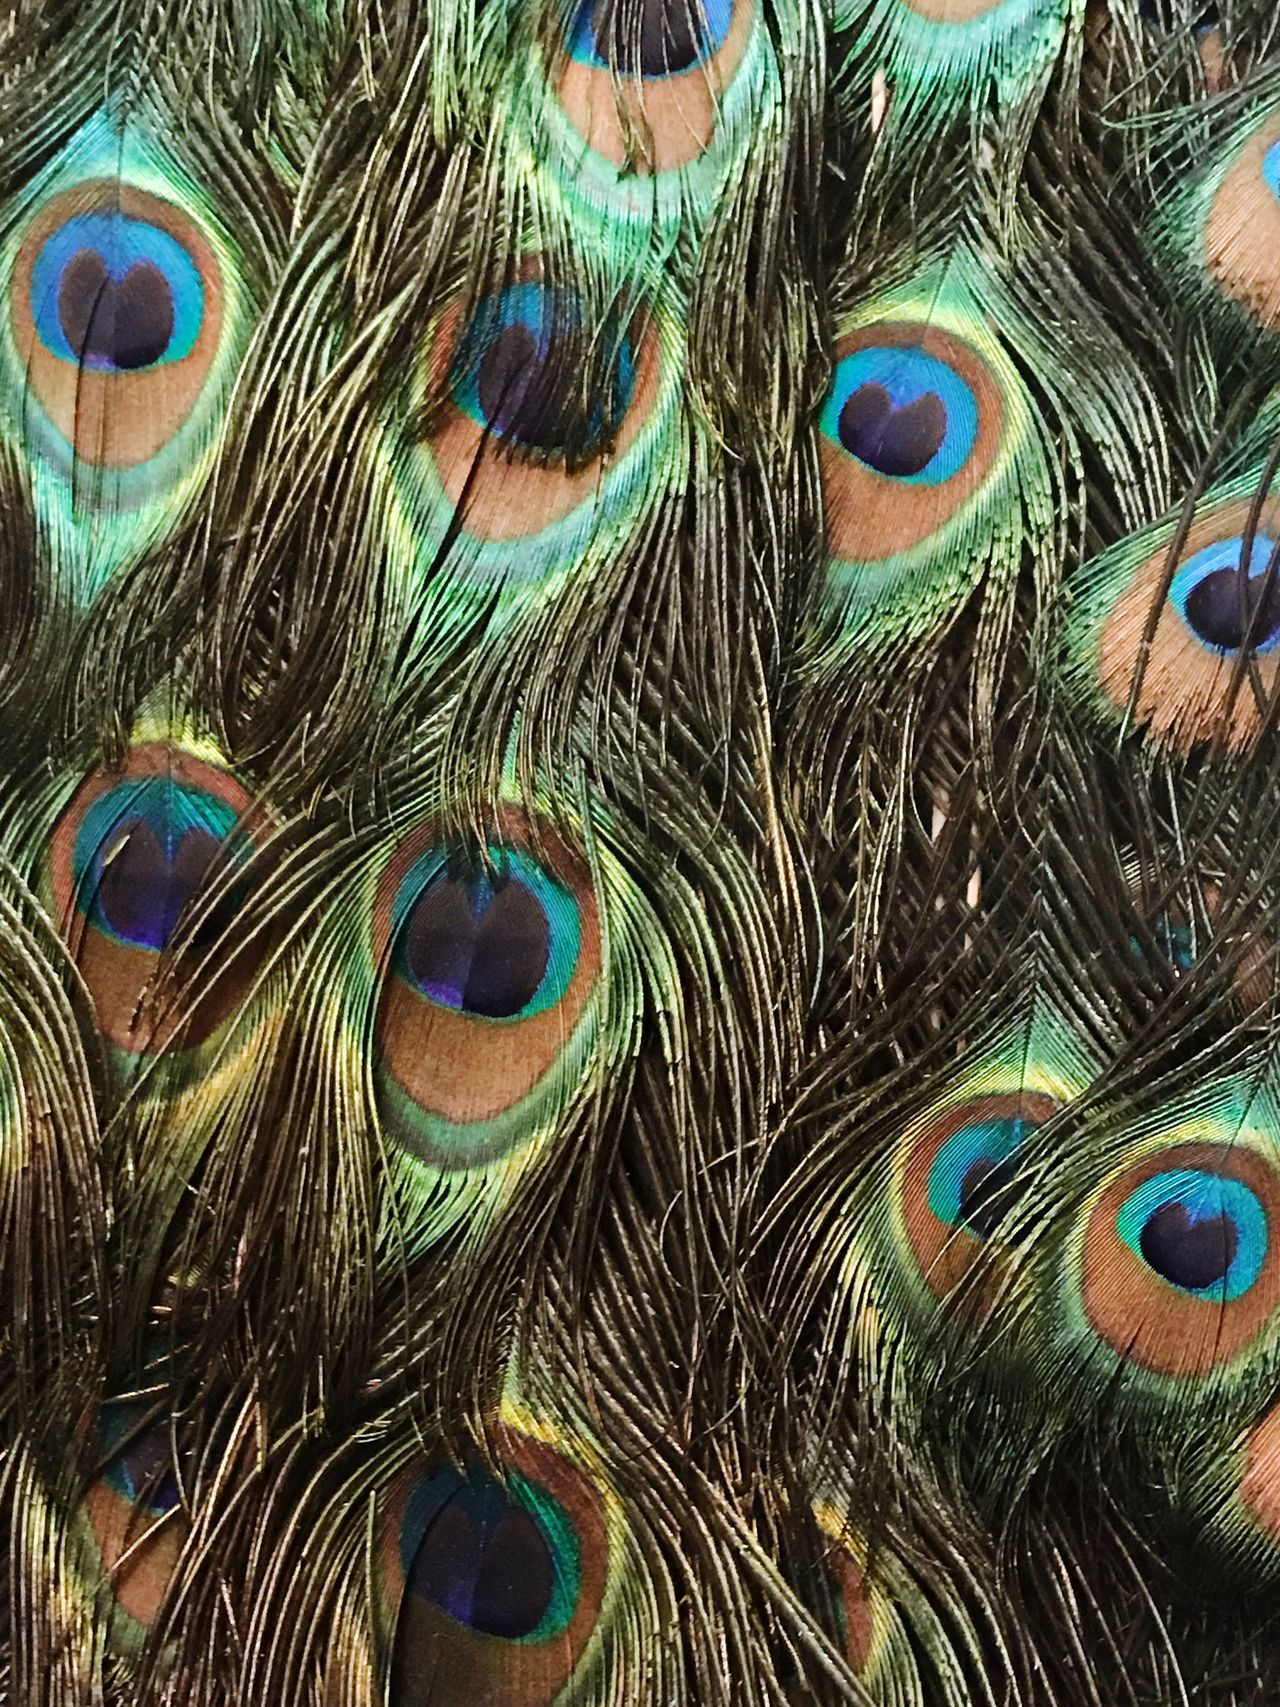 Peacock Peacock Feather Full Frame Feather  Backgrounds Multi Colored Close-up Animal Body Part Bird No People Pattern Animal Themes Indoors  Fanned Out Day Nature